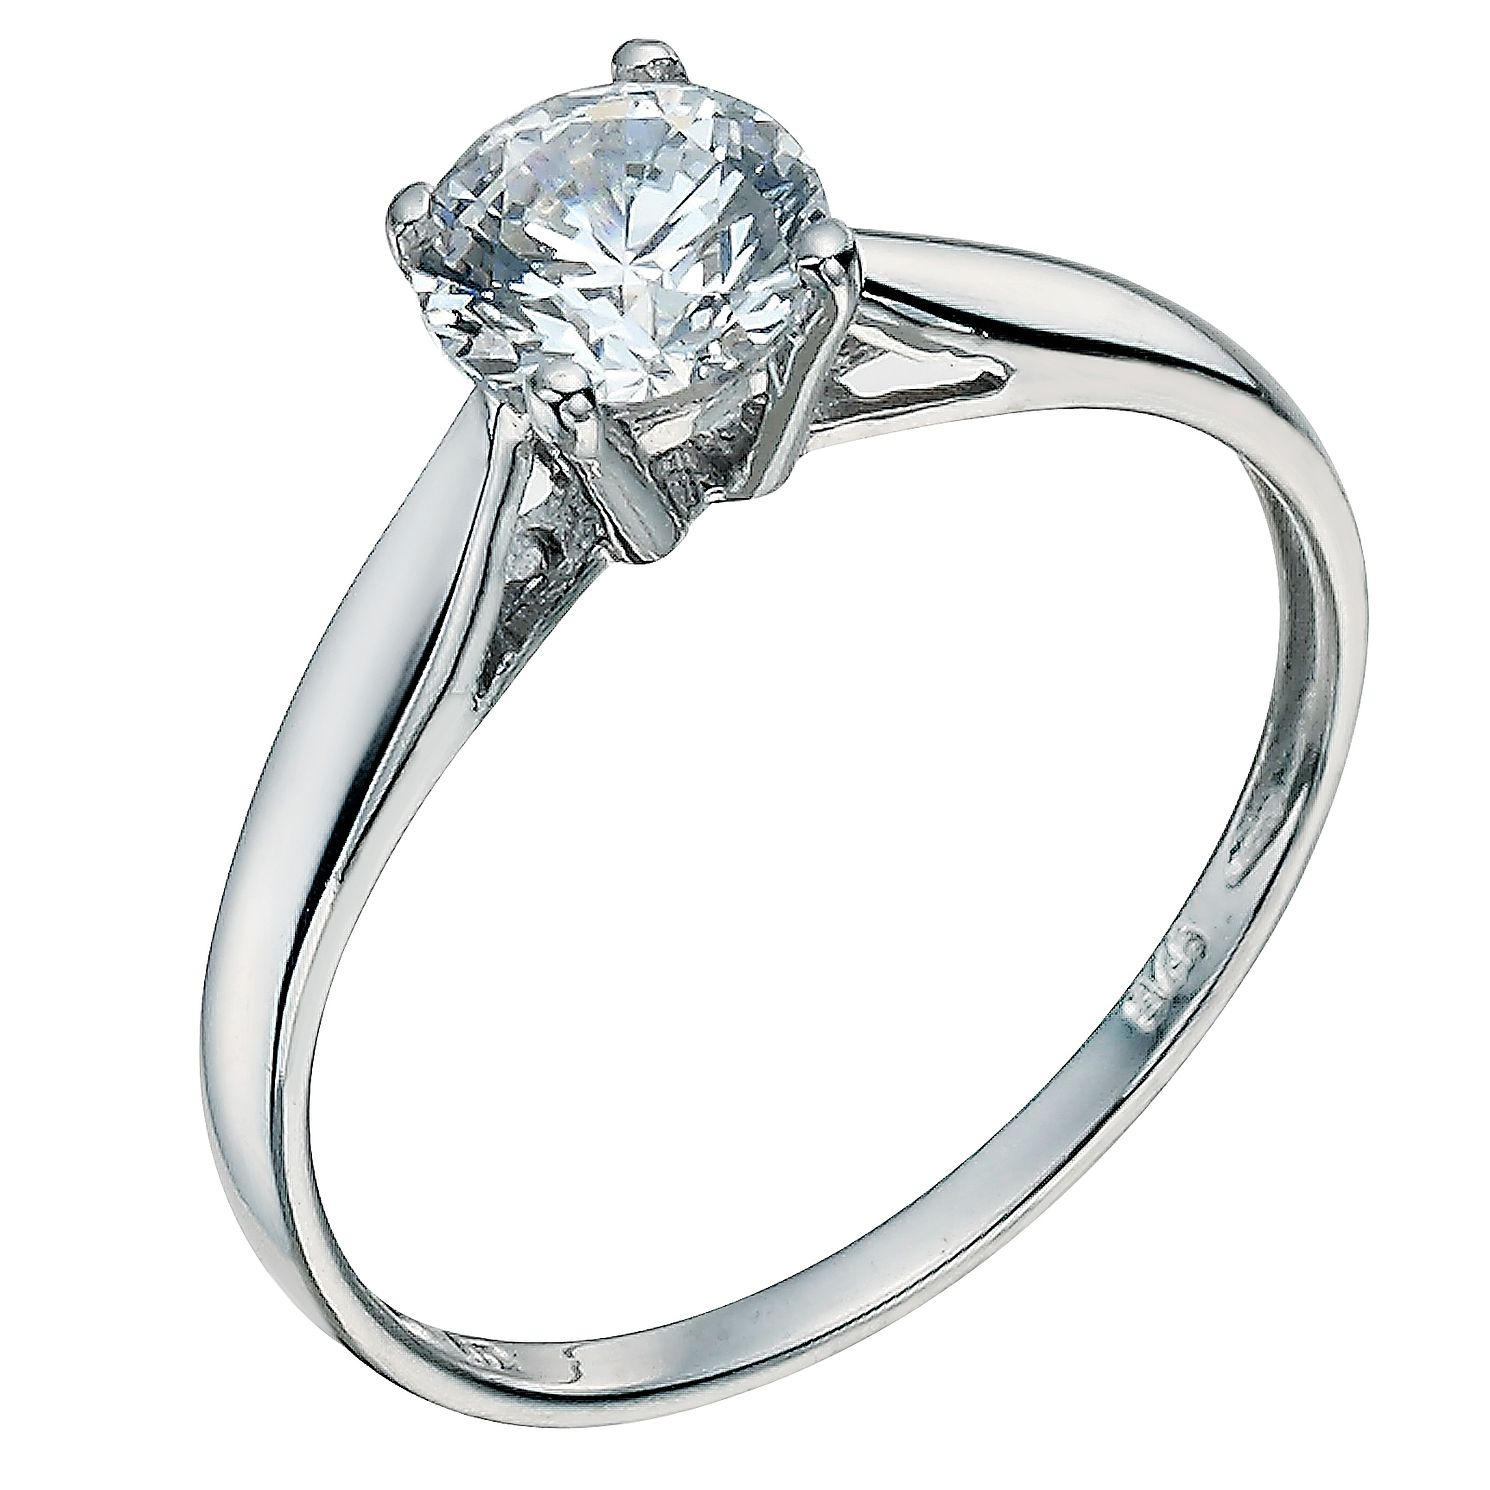 gia ring with special anniversary diamond occasion gifts solitaire certificate jewellery image square avanti